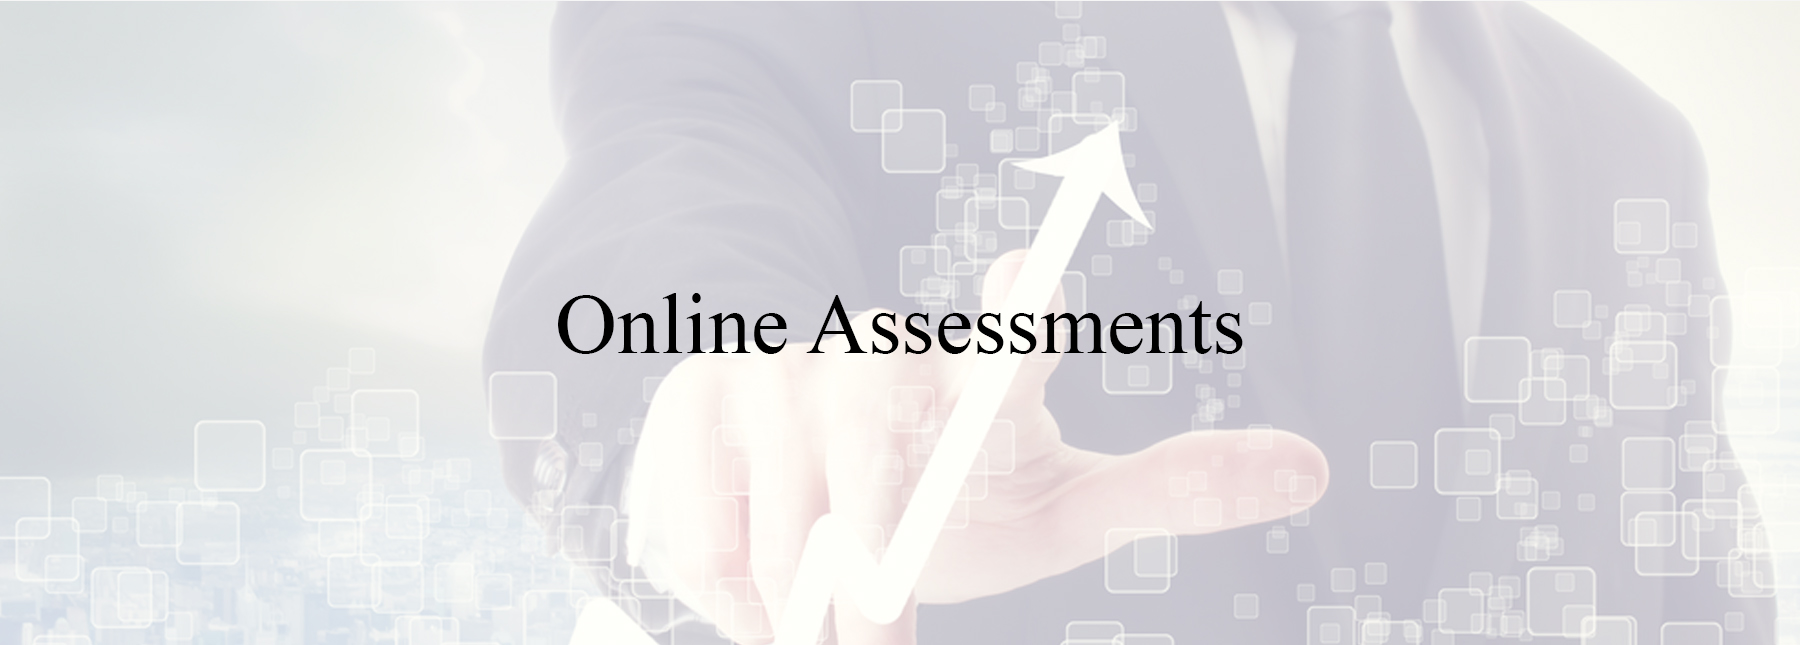 Online Assessments